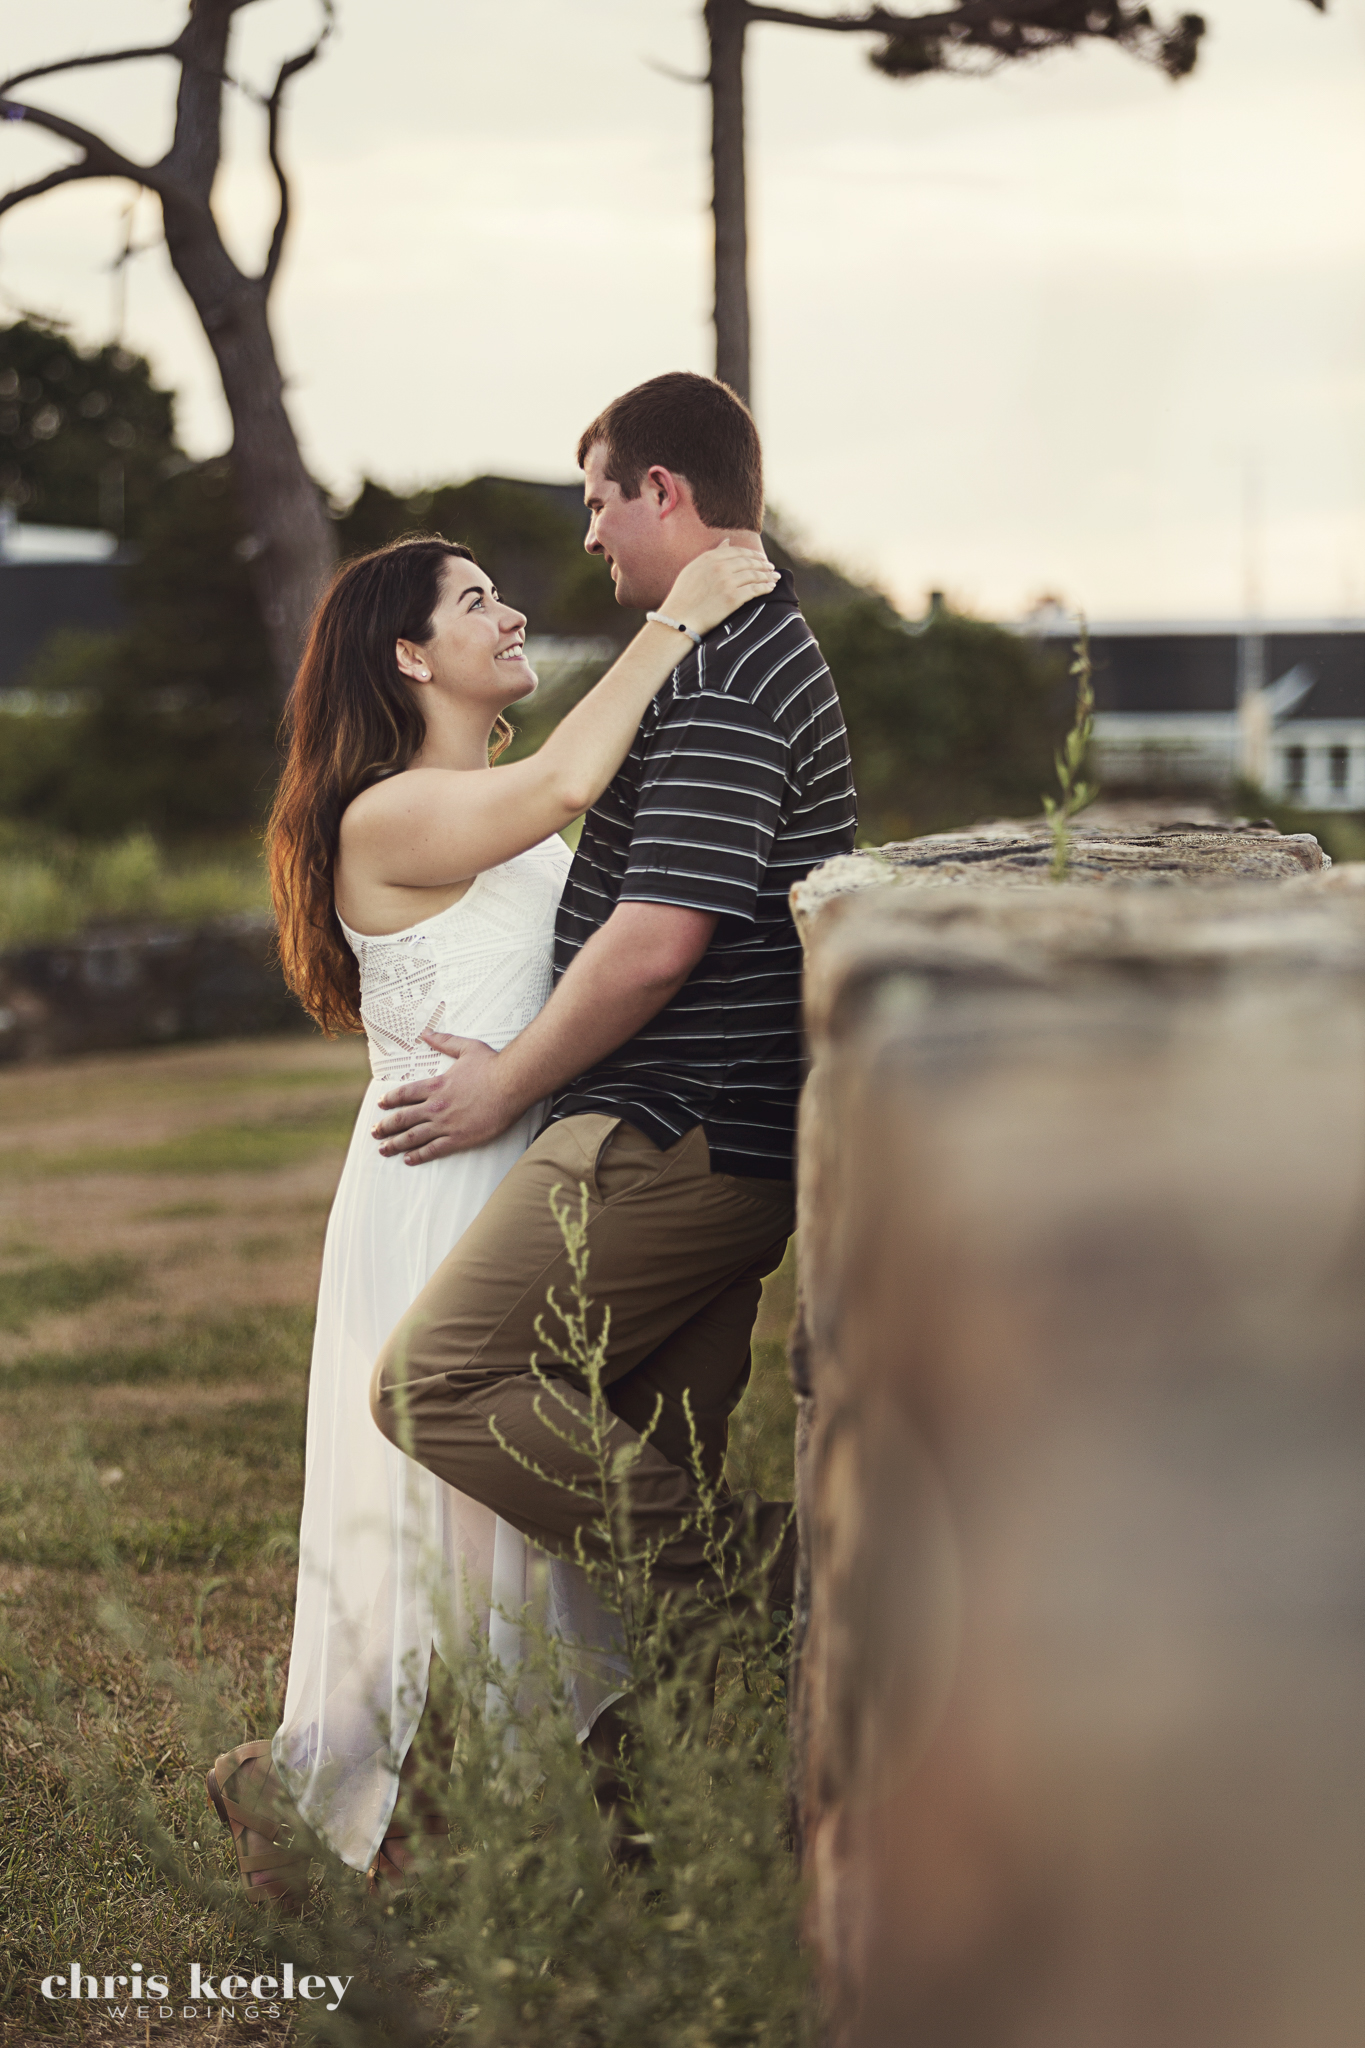 51-engagement-wedding-pictures-rye-new-hampshire-chris-keeley-weddings.jpg